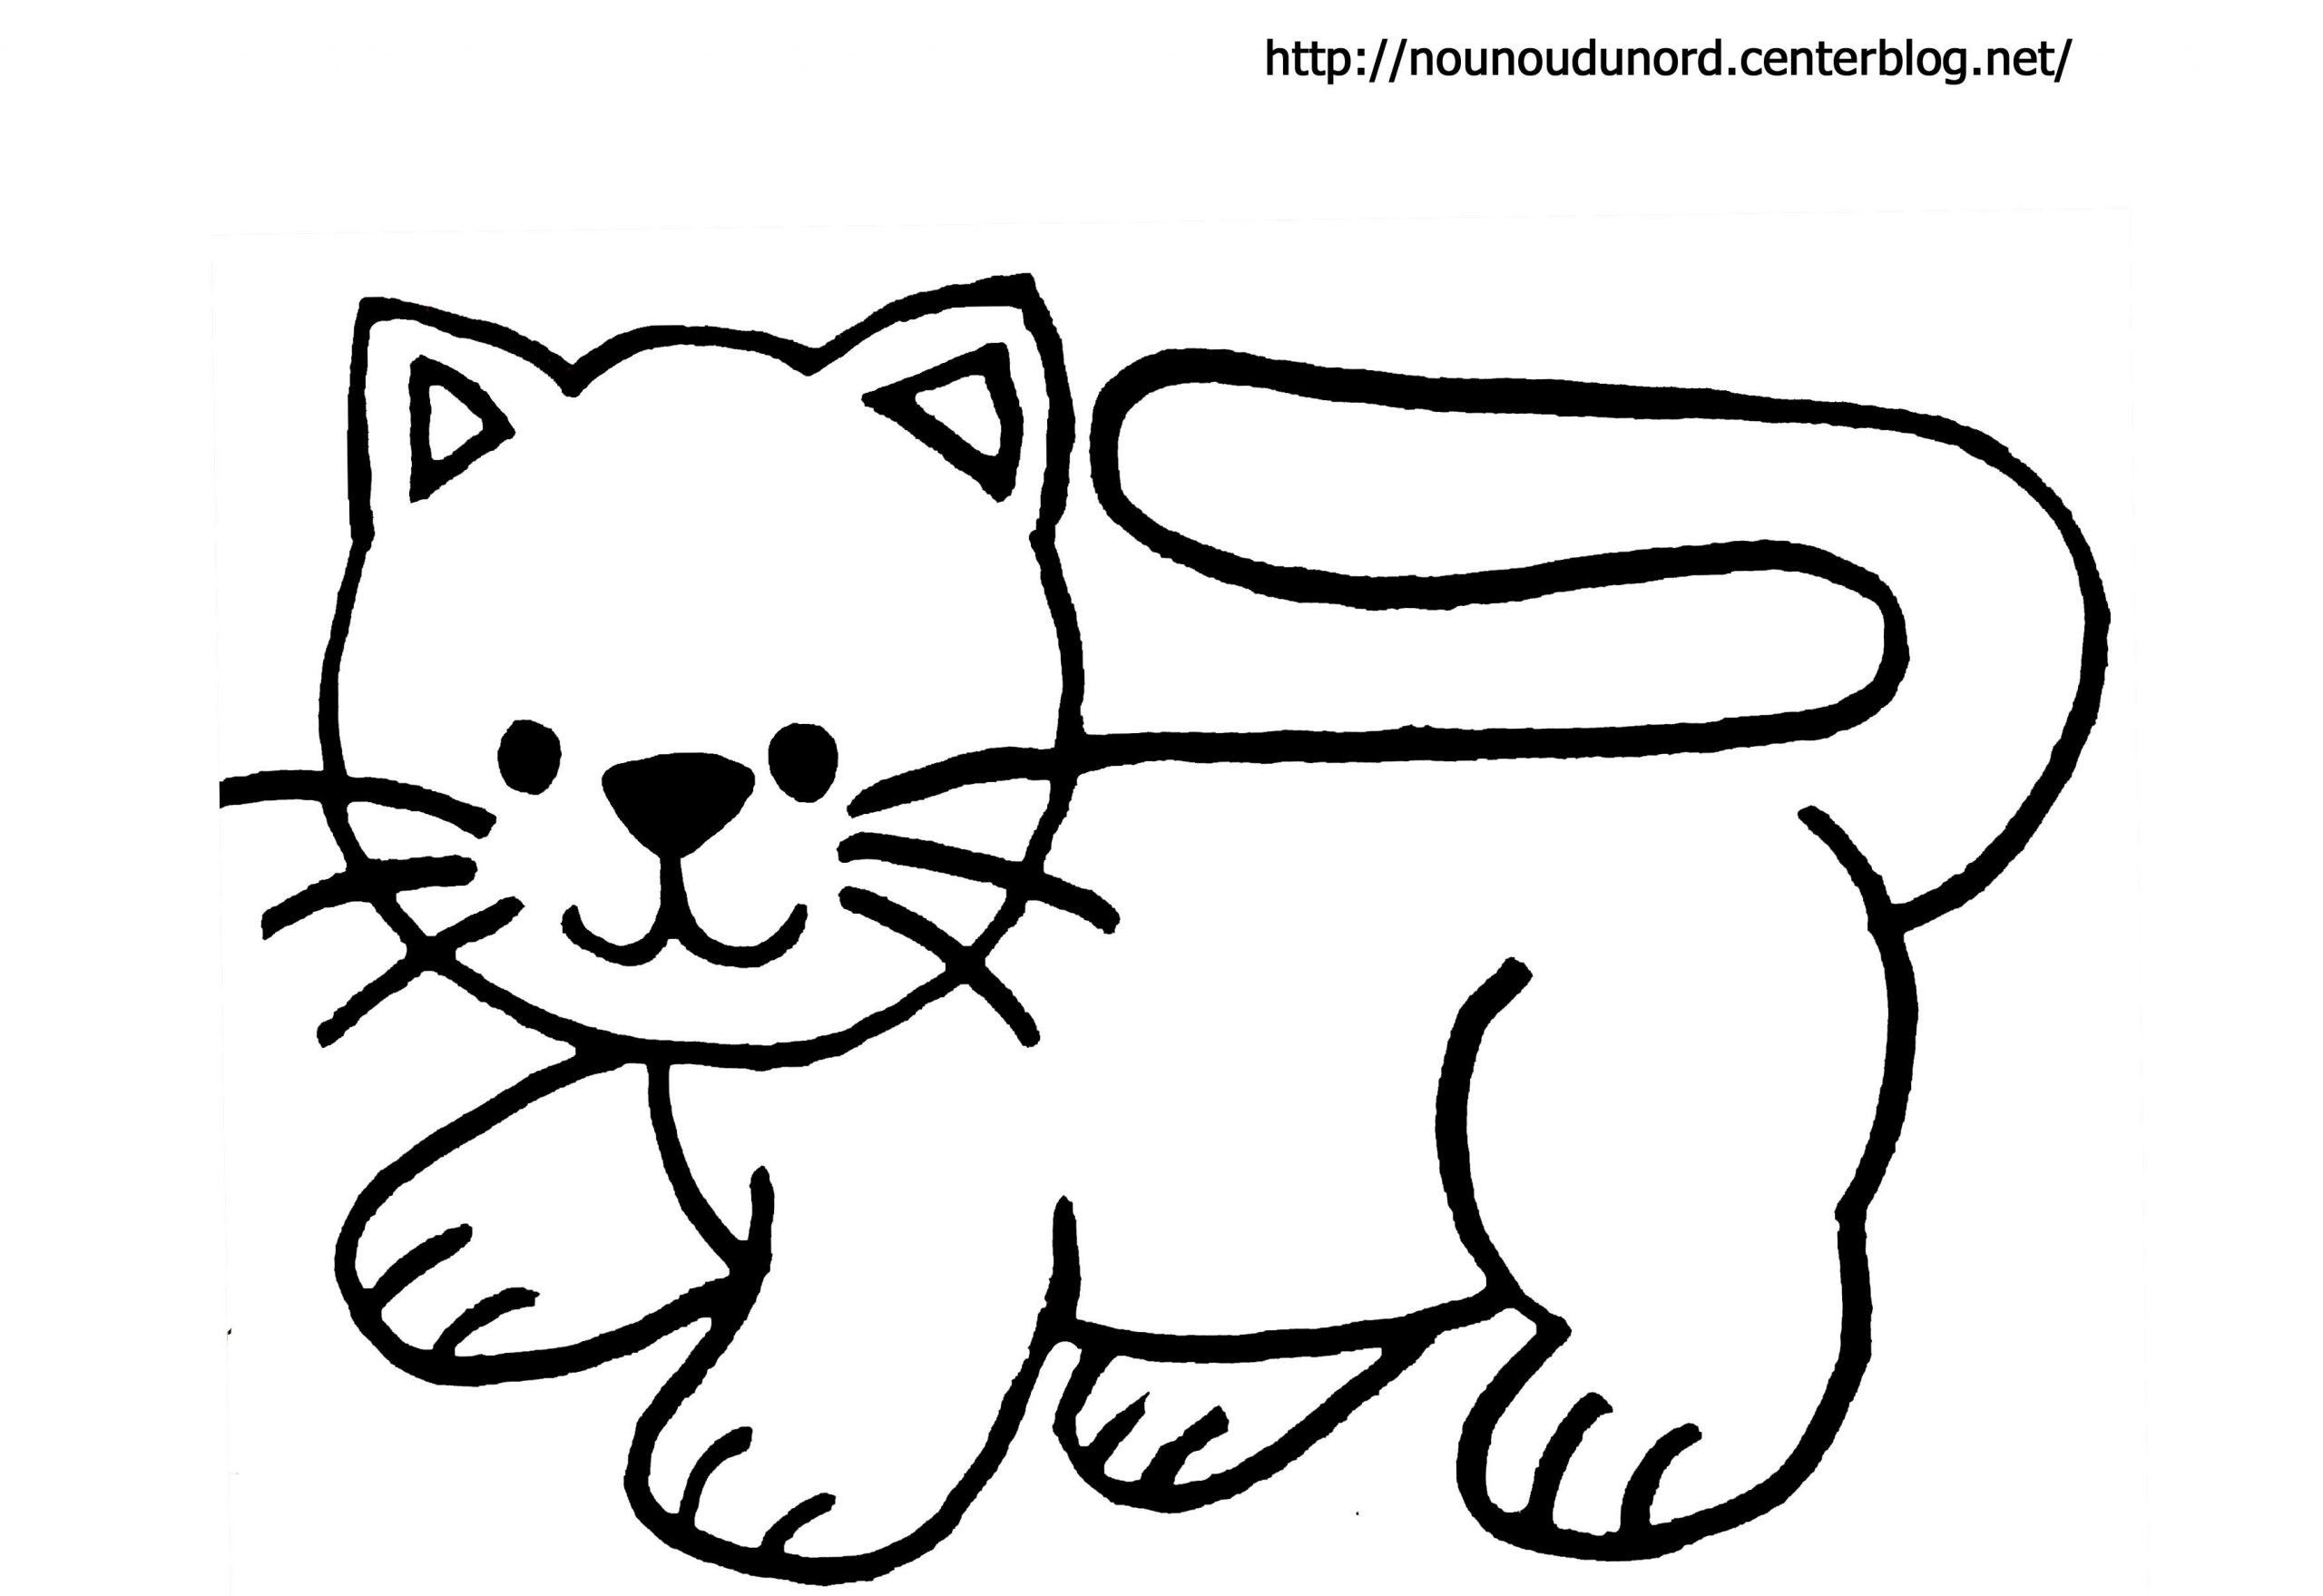 Dessin De Chat A Dessiner Facile | Coloriage Chat, Coloriage serapportantà Coloriage De Chat En Ligne